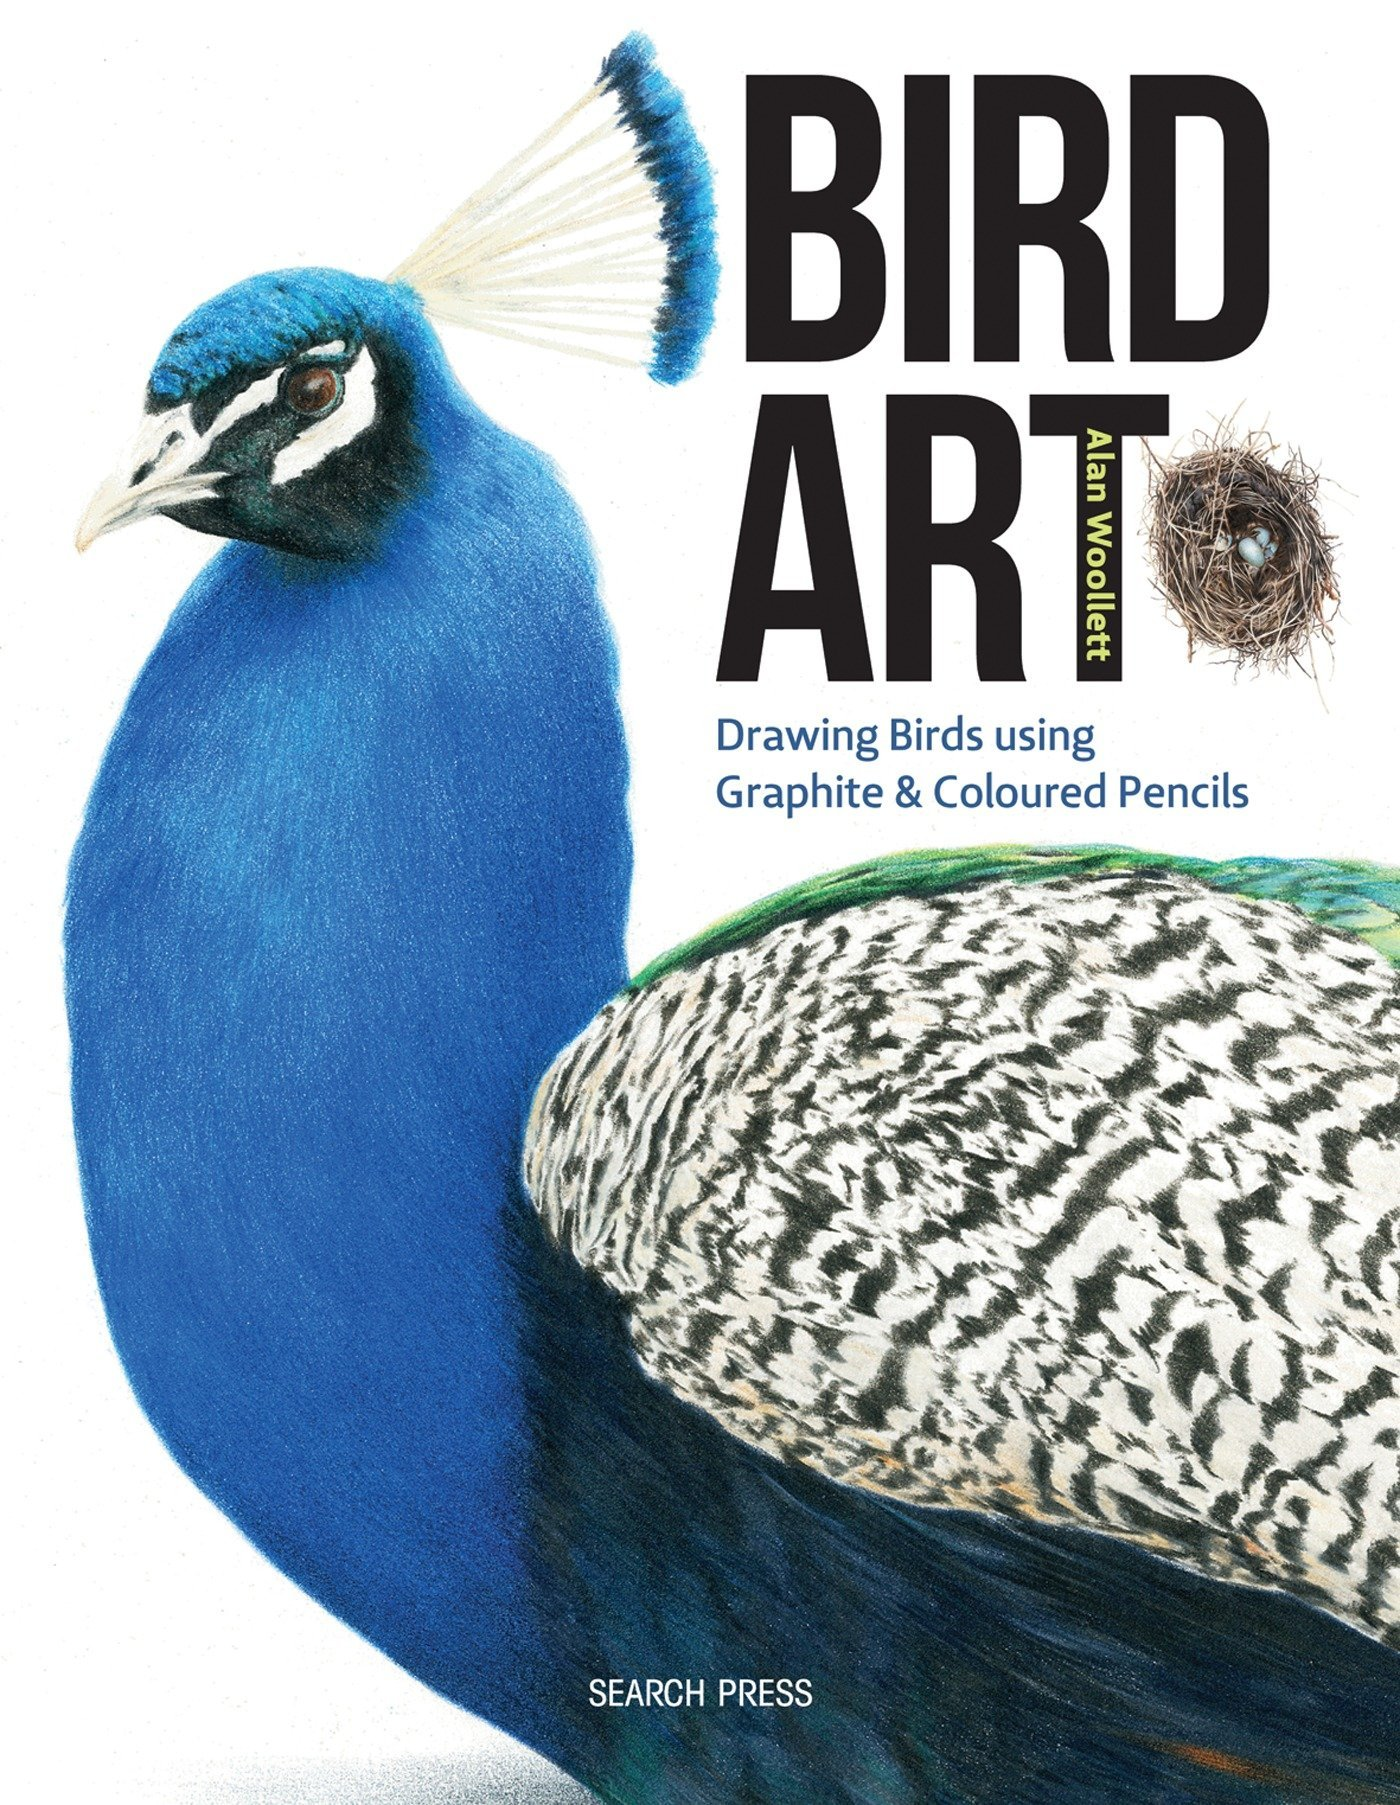 Bird Art: Drawing Birds Using Graphite & Coloured Pencils (Inglés) Tapa blanda – 4 abr 2017